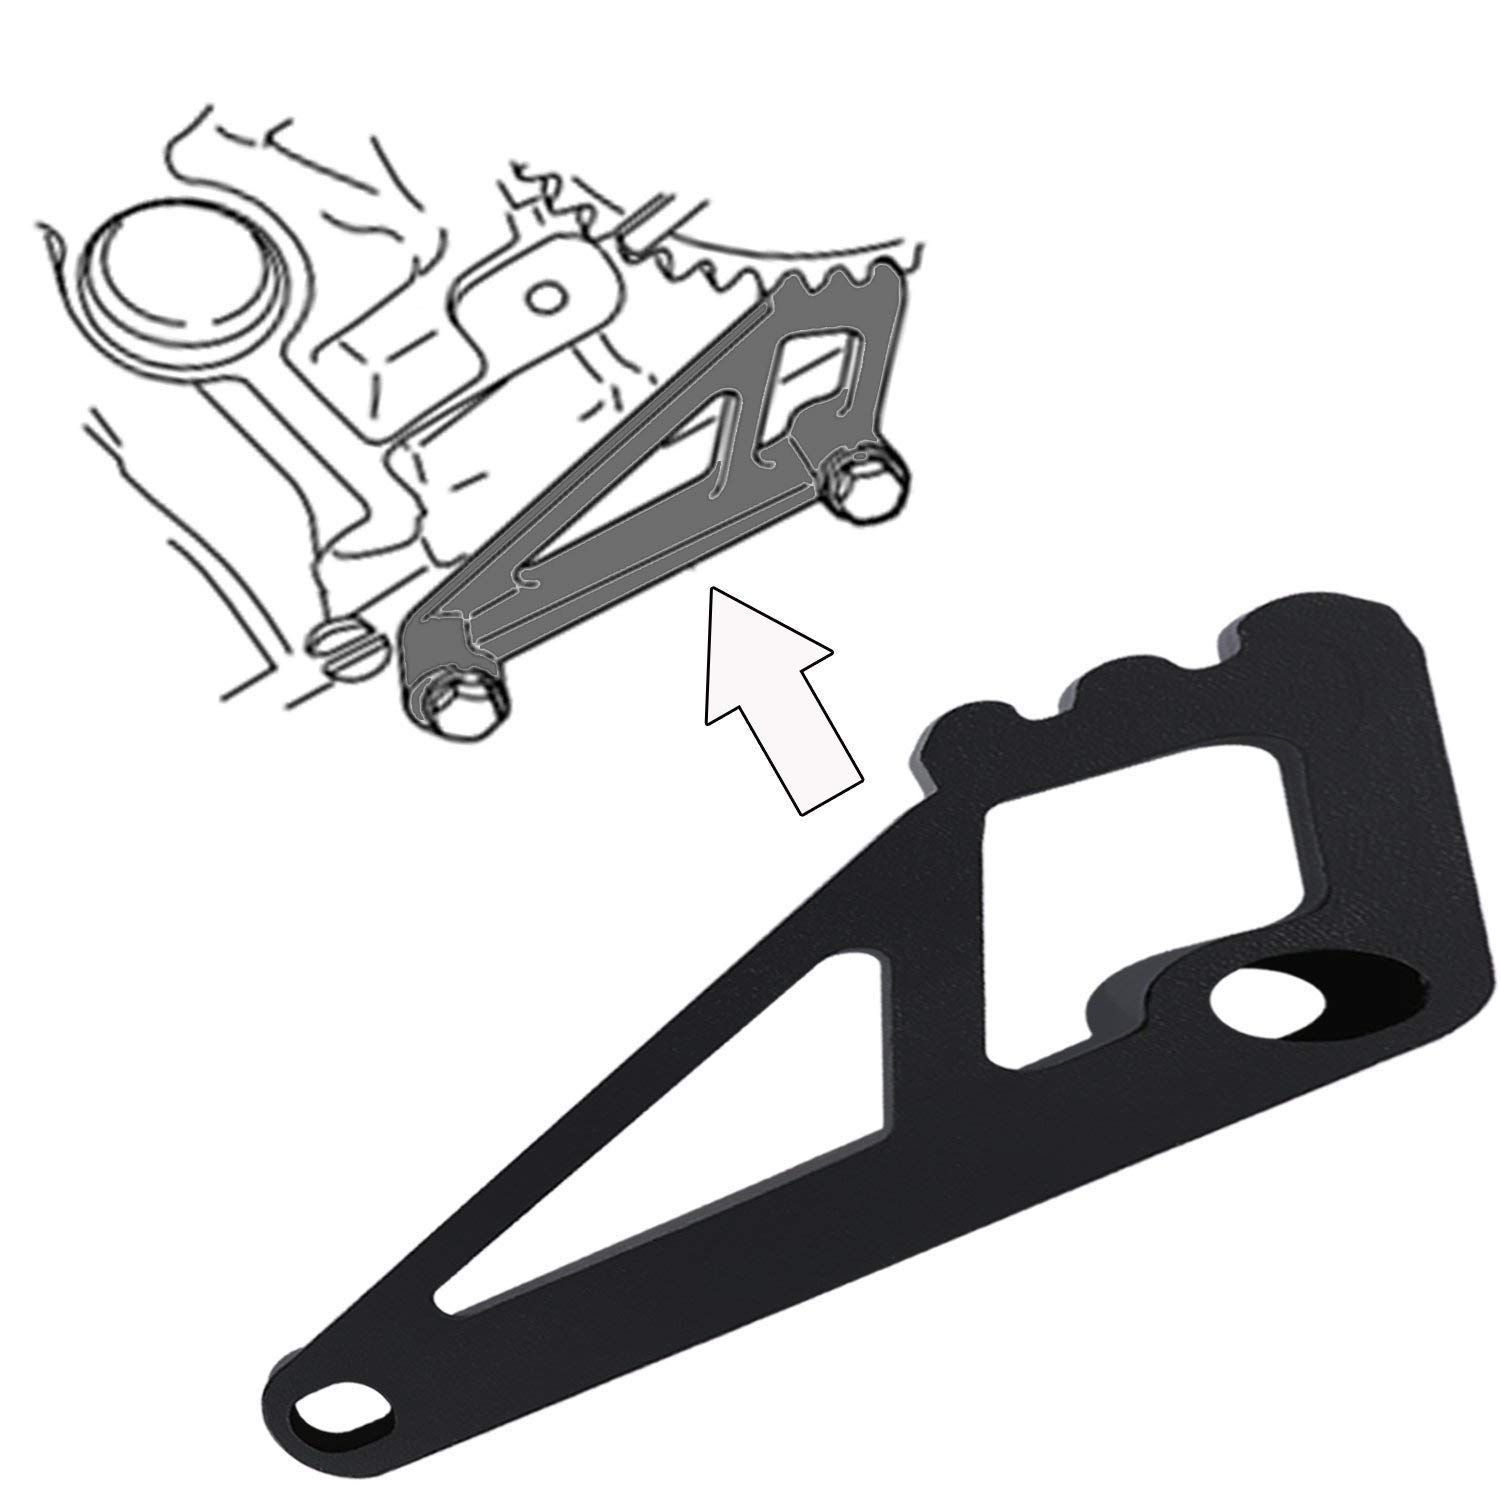 Timing Chain Locking Wedge Tool and Crankshaft Positioning Wrench Similar to Rotunda 303-448 Yoursme Cam Phaser Locking Tool 6024 /& 525219 for Ford 4.6L//5.4L 3V Engines T93P-6303-A